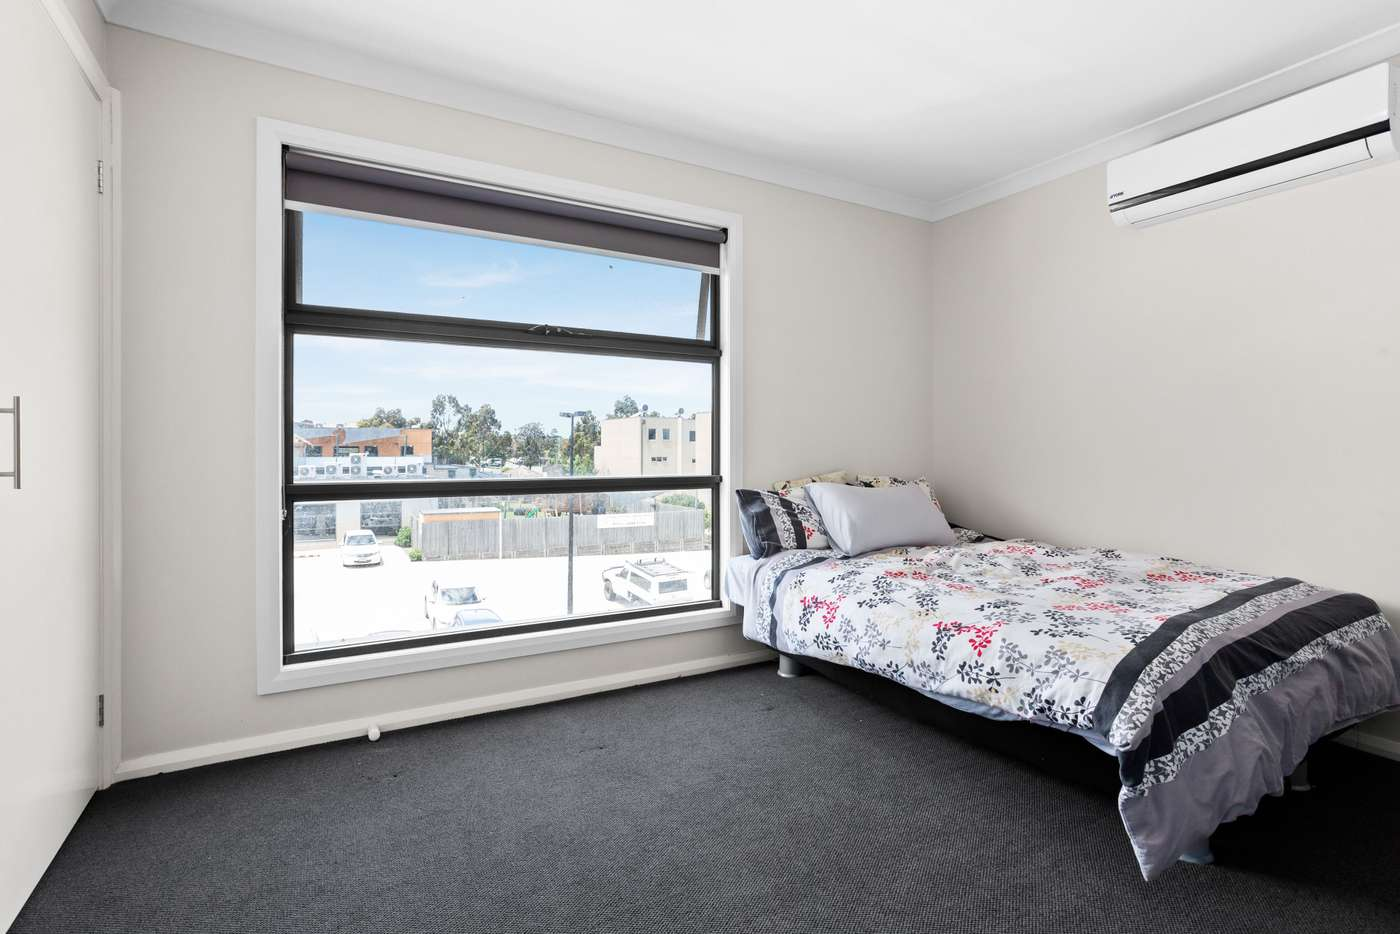 Seventh view of Homely townhouse listing, 107/141 Windermere Boulevard, Pakenham VIC 3810